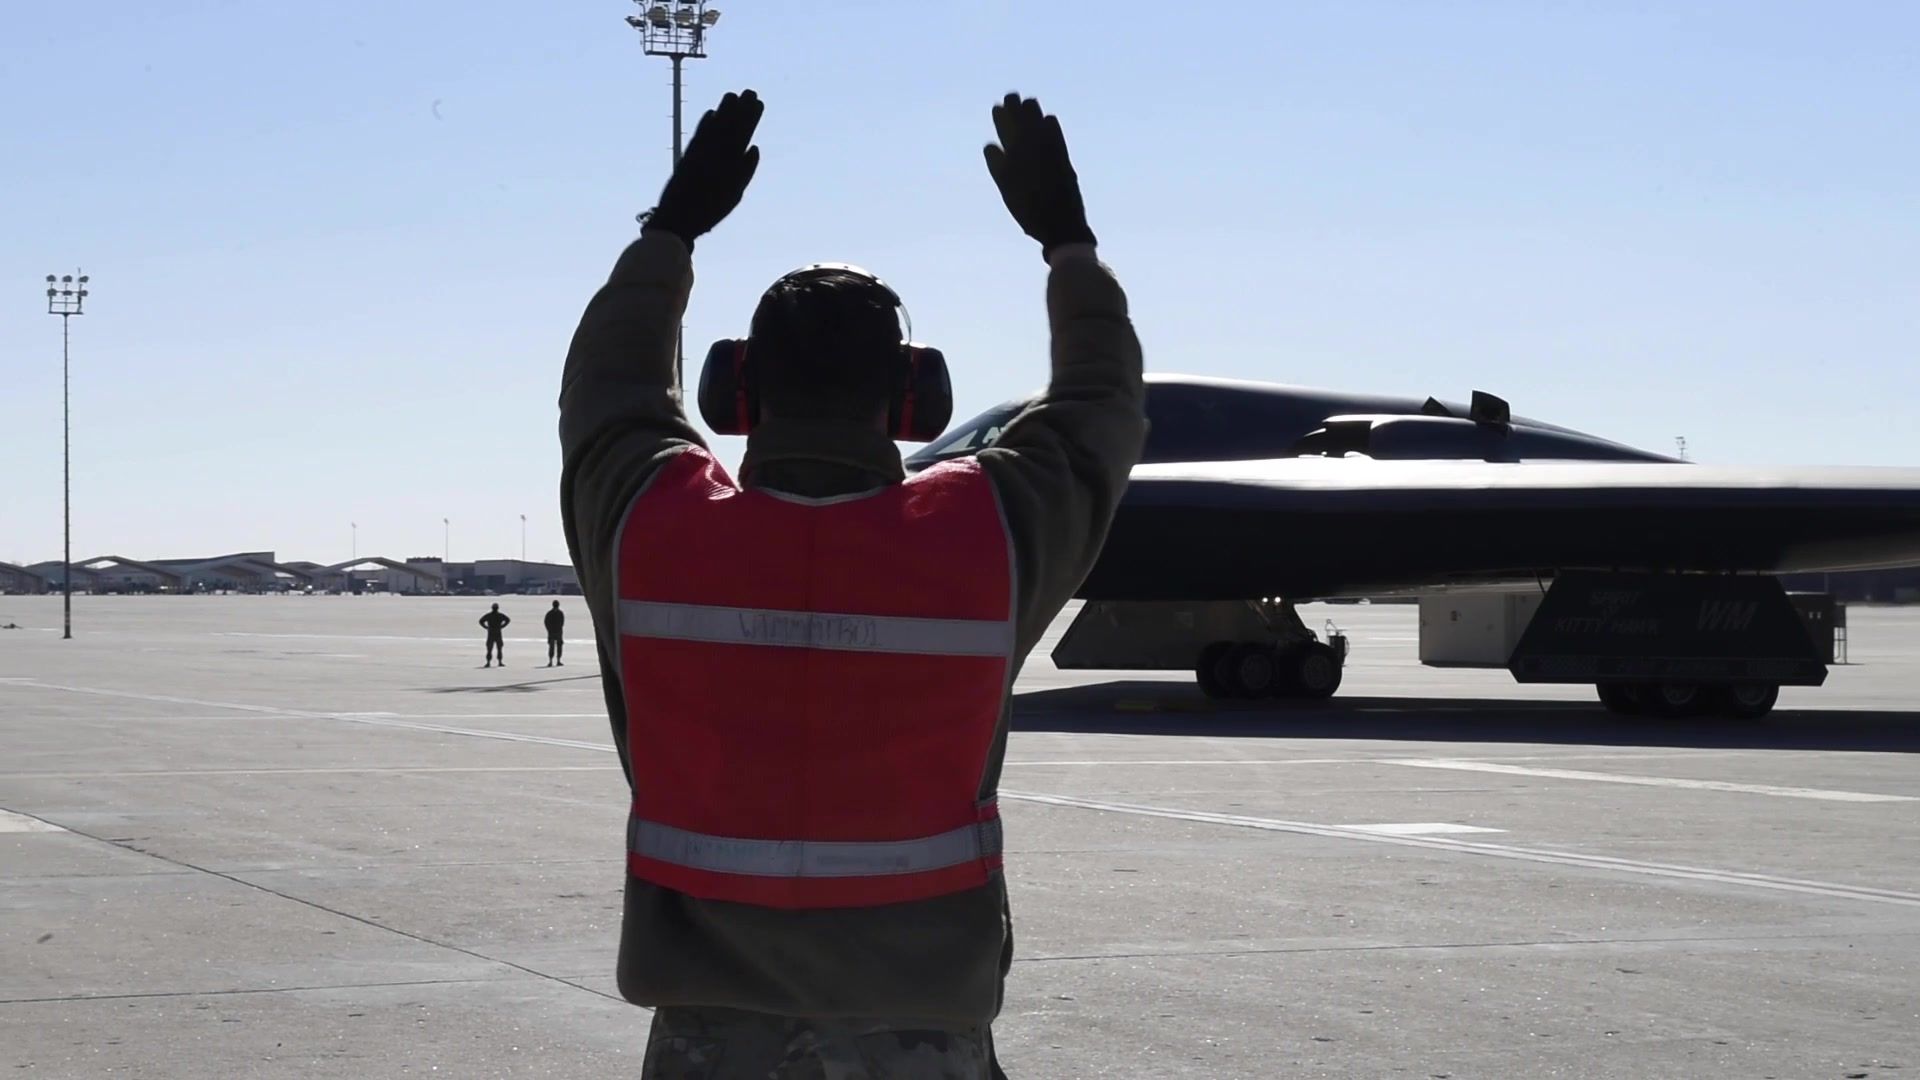 Members of the 509th Operation Support Squadron board their aircraft at Whiteman Air Force Base, Missouri, Feb. 3, 2021. B-roll package includes pilots walking to aircraft, speaking with crew chiefs, and a B-2 Spirit stealth bomber taxiing. (U.S. Air Force video by Airman 1st Class Christina Carter)